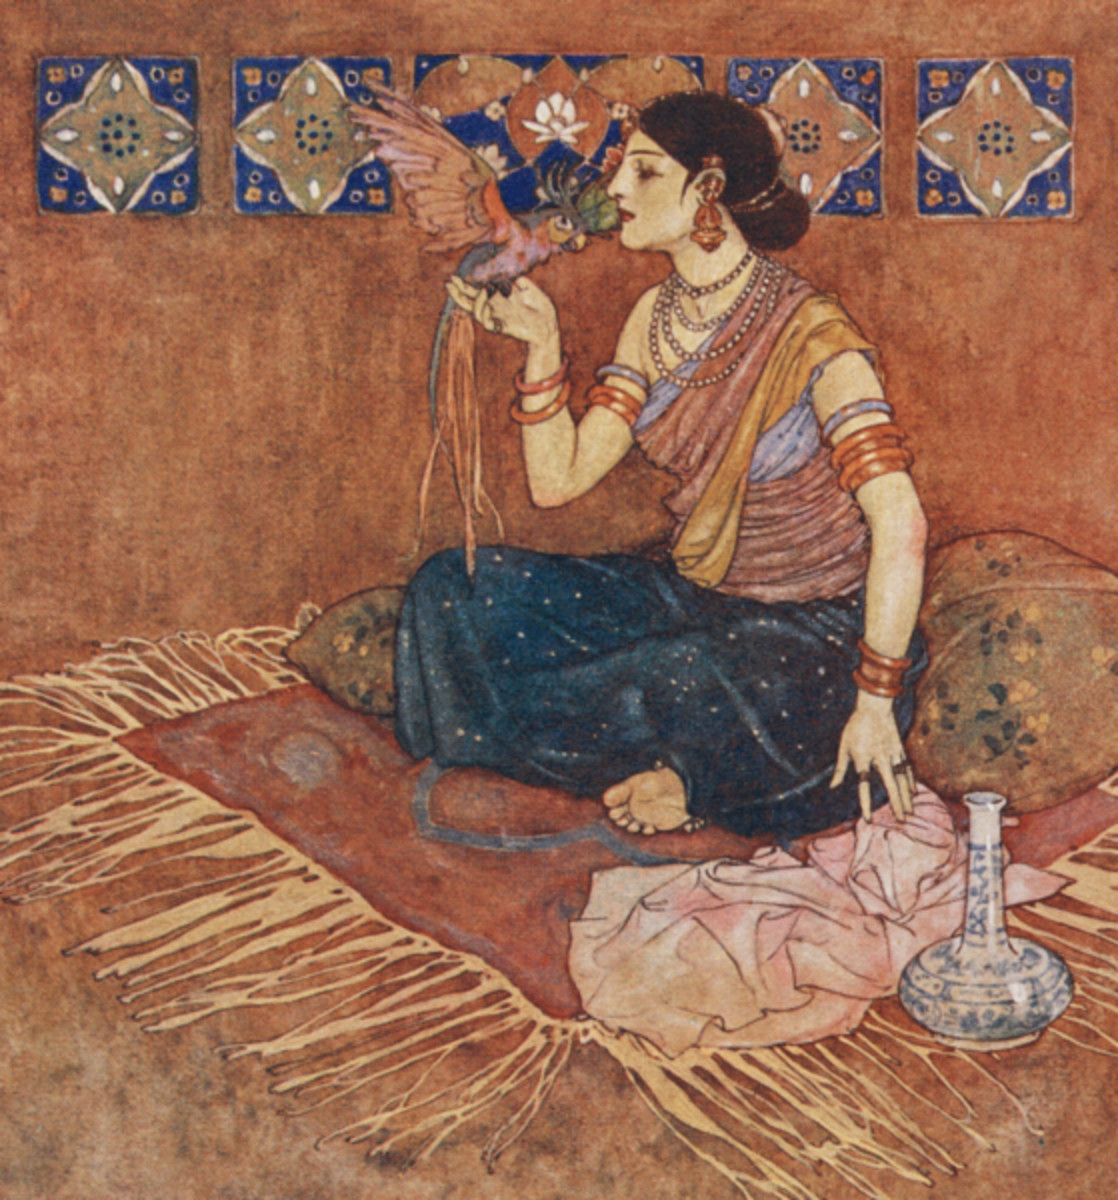 """Here we show a portion of 'Pirouze, the fairest and most honourably born' - it is from the suite by Edmund Dulac published in """"Stories from the Arabian Nights"""" (1907)."""